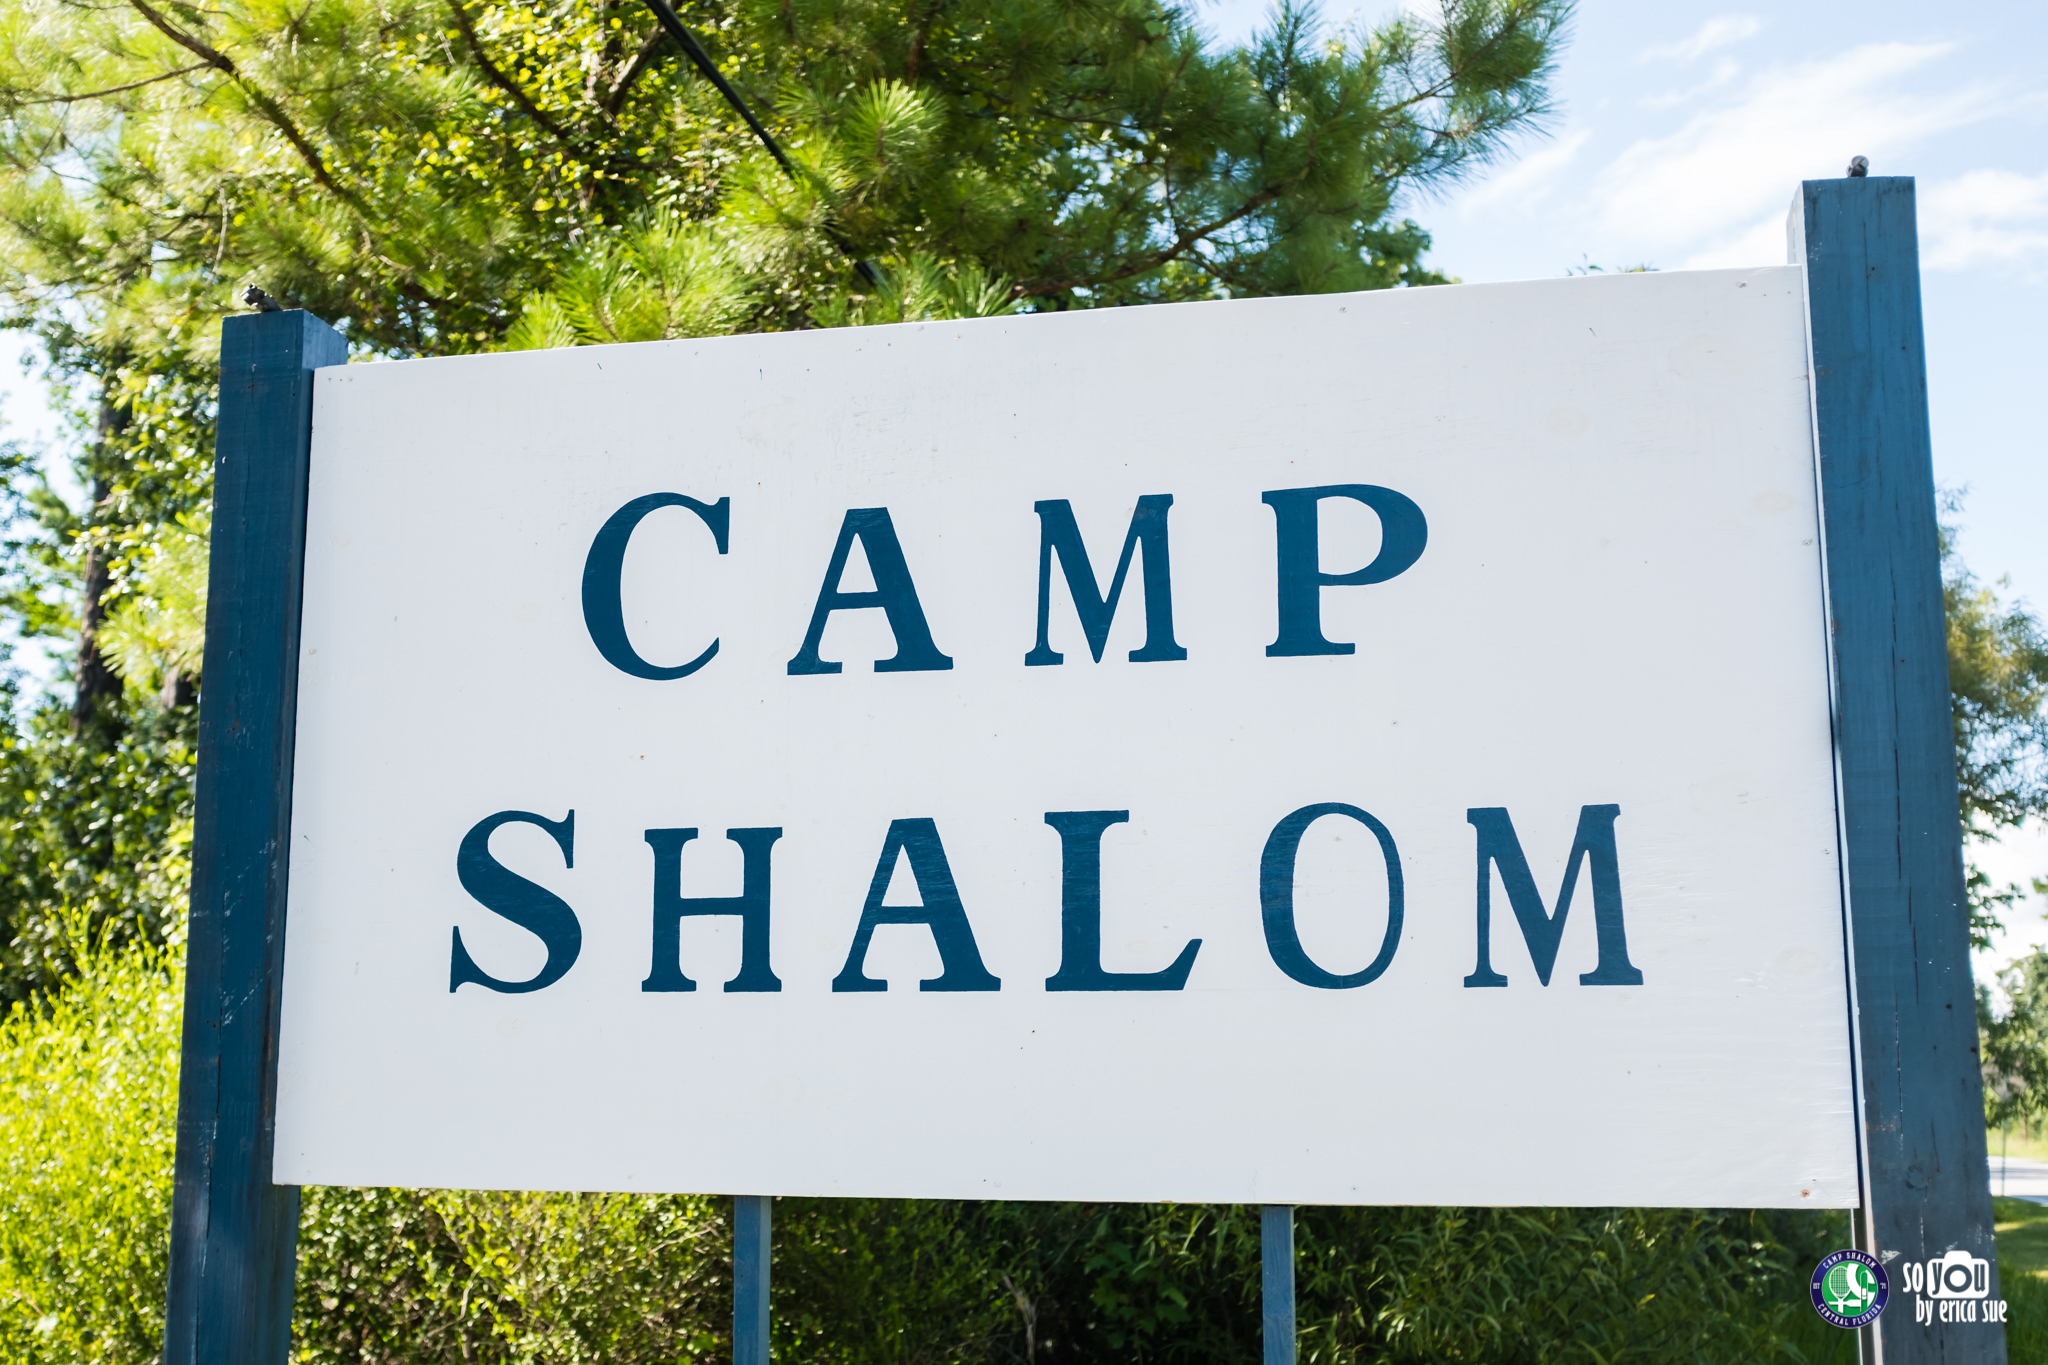 so-you-by-erica-sue-camp-shalom-central-florida-sleepaway-camp-1614.jpg